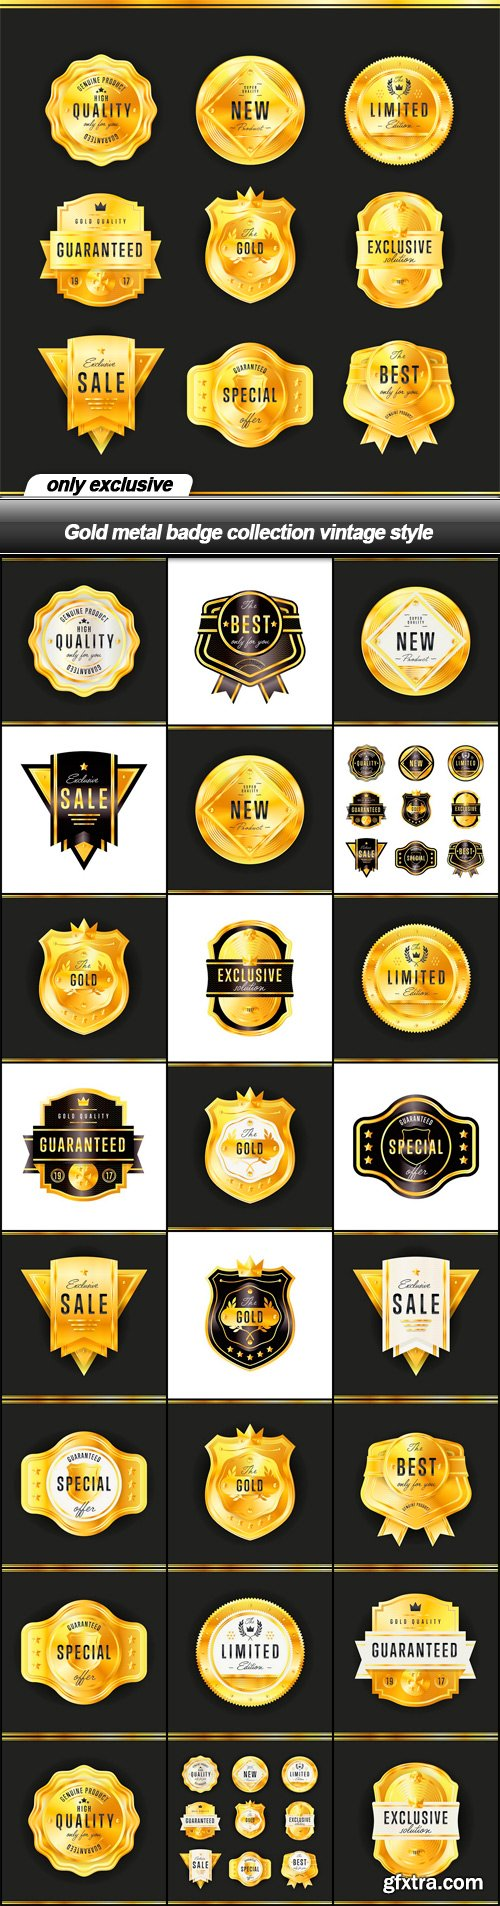 Gold metal badge collection vintage style - 25 EPS